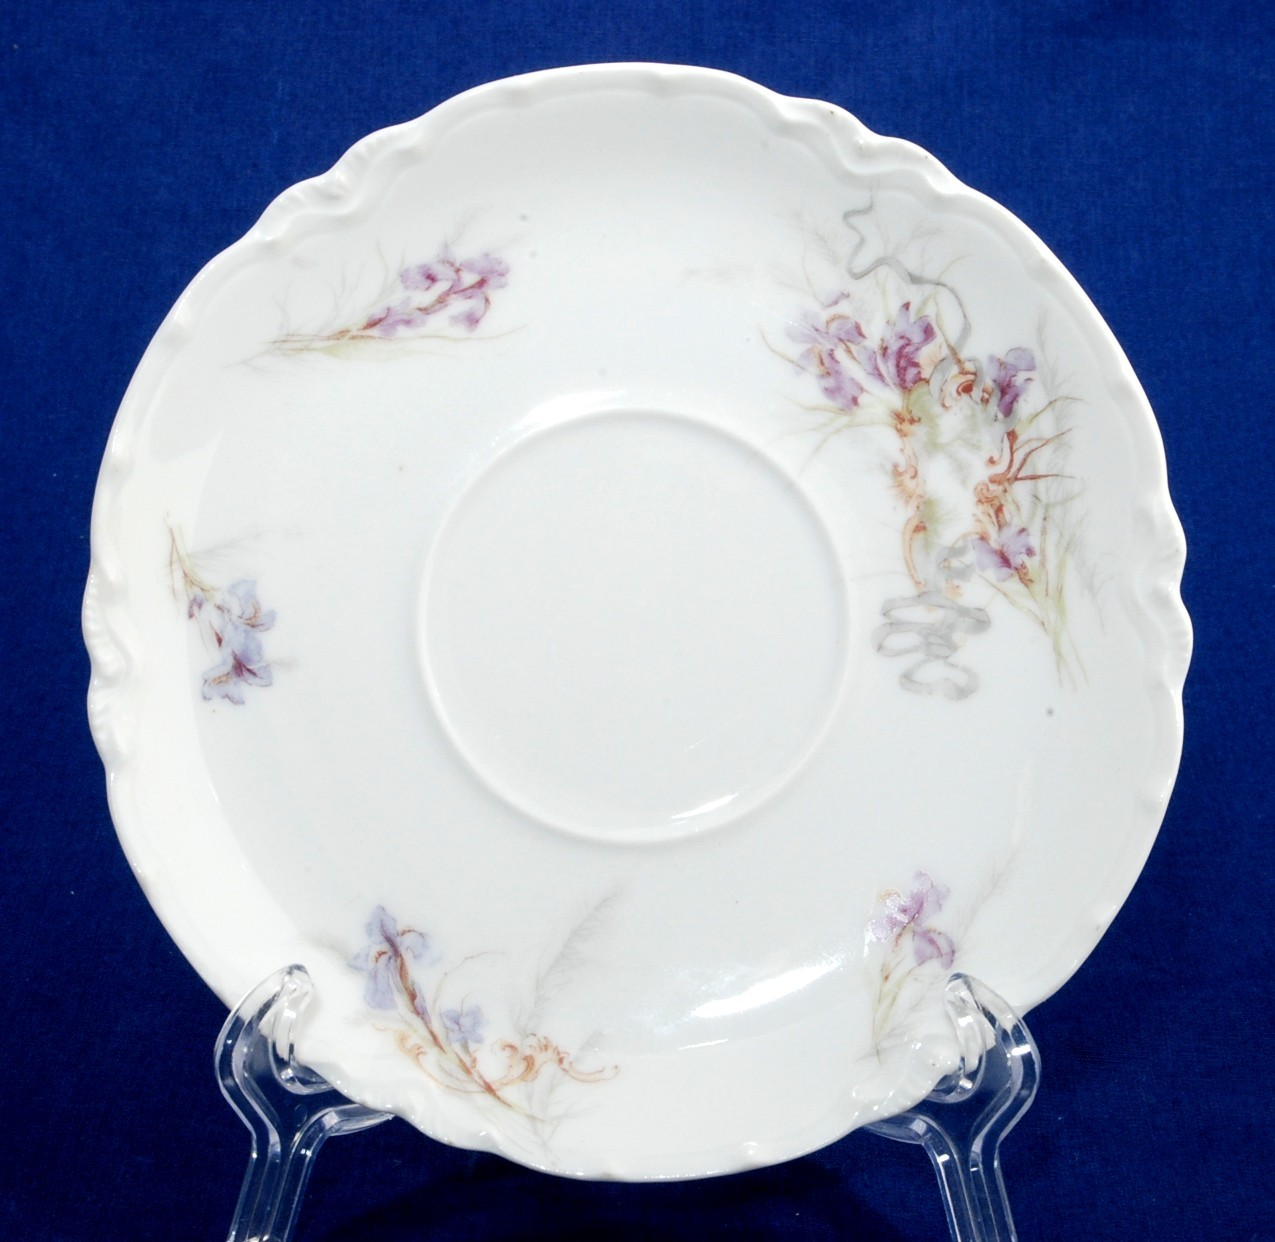 Primary image for Haviland Limoges Lavender Iris Flowers Saucer H&Co France SCH482A